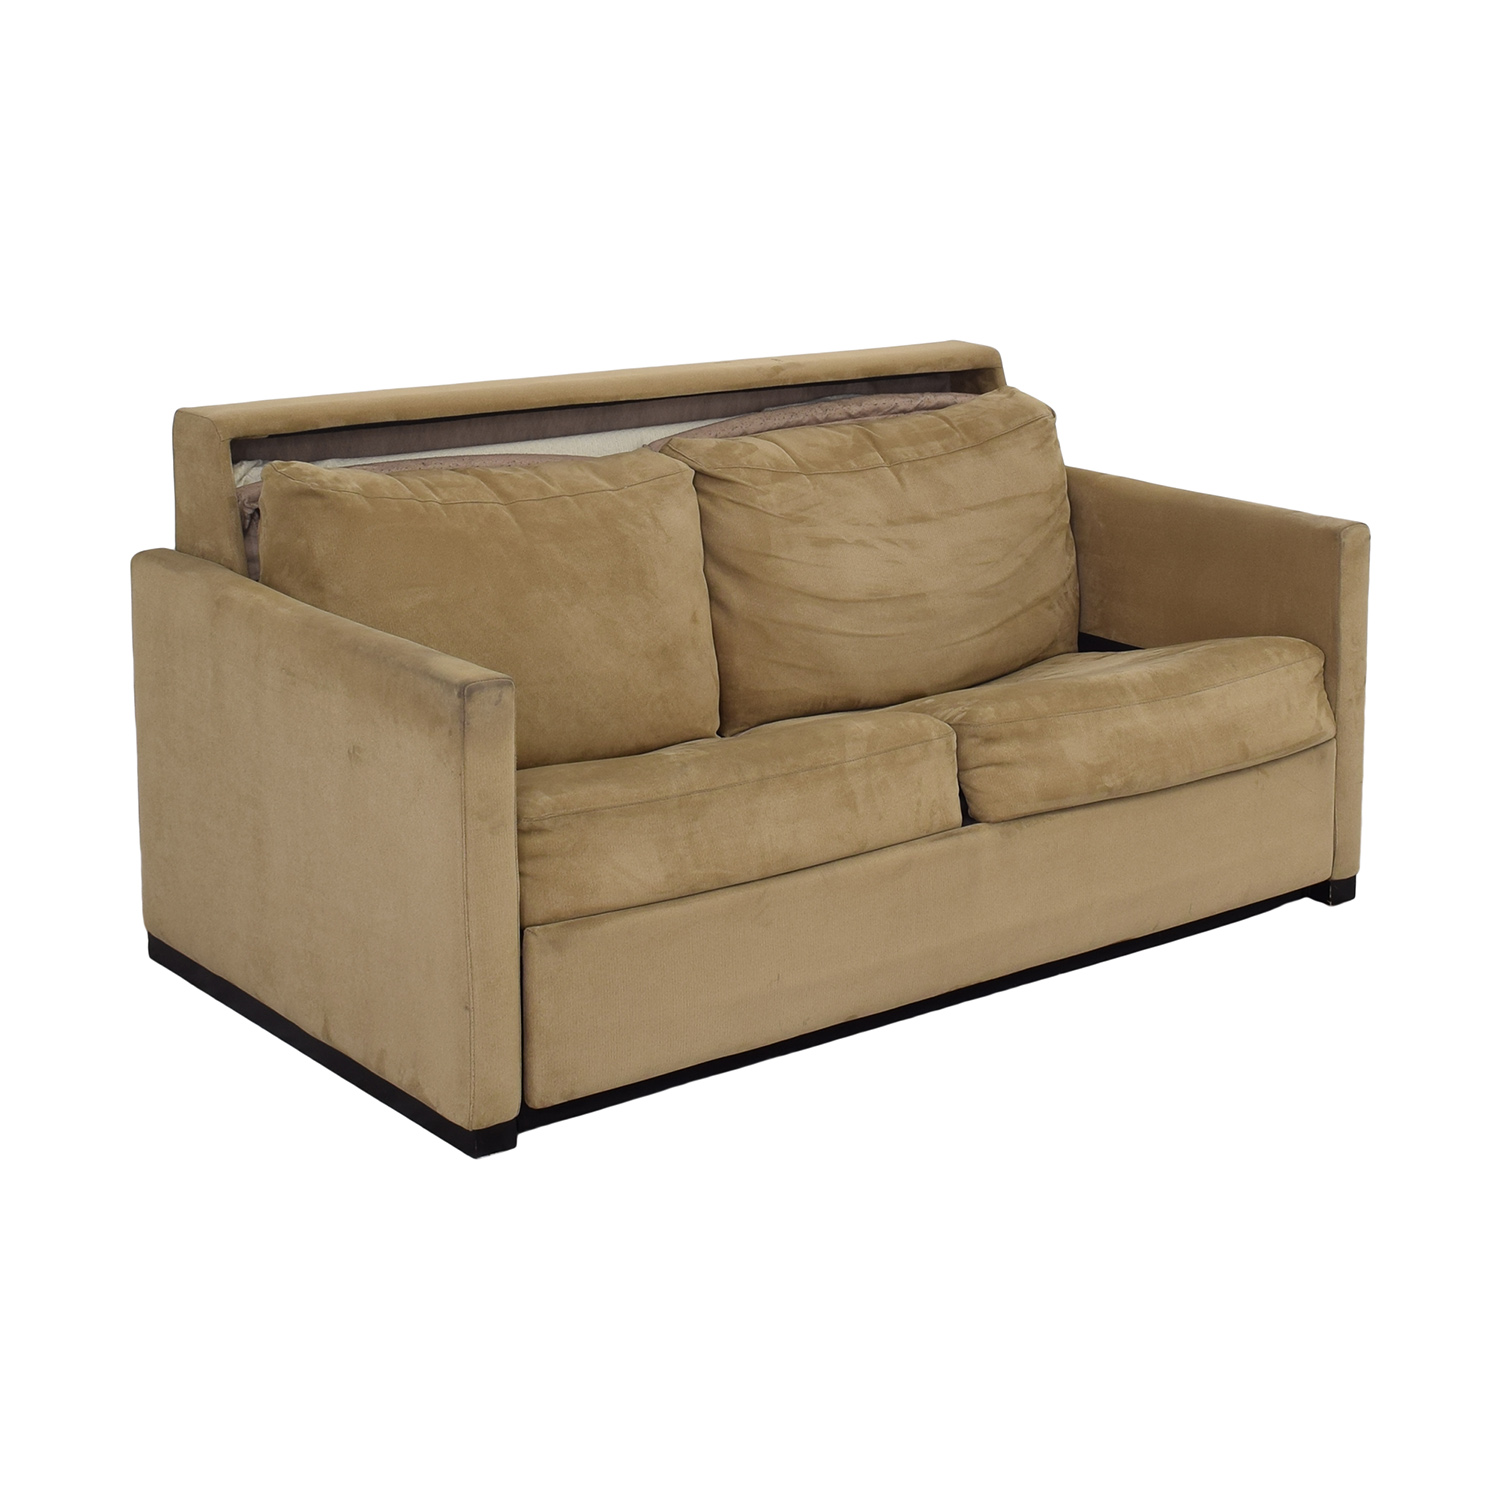 American Leather American Leather Patterson Sleeper Sofa with Ottoman tan